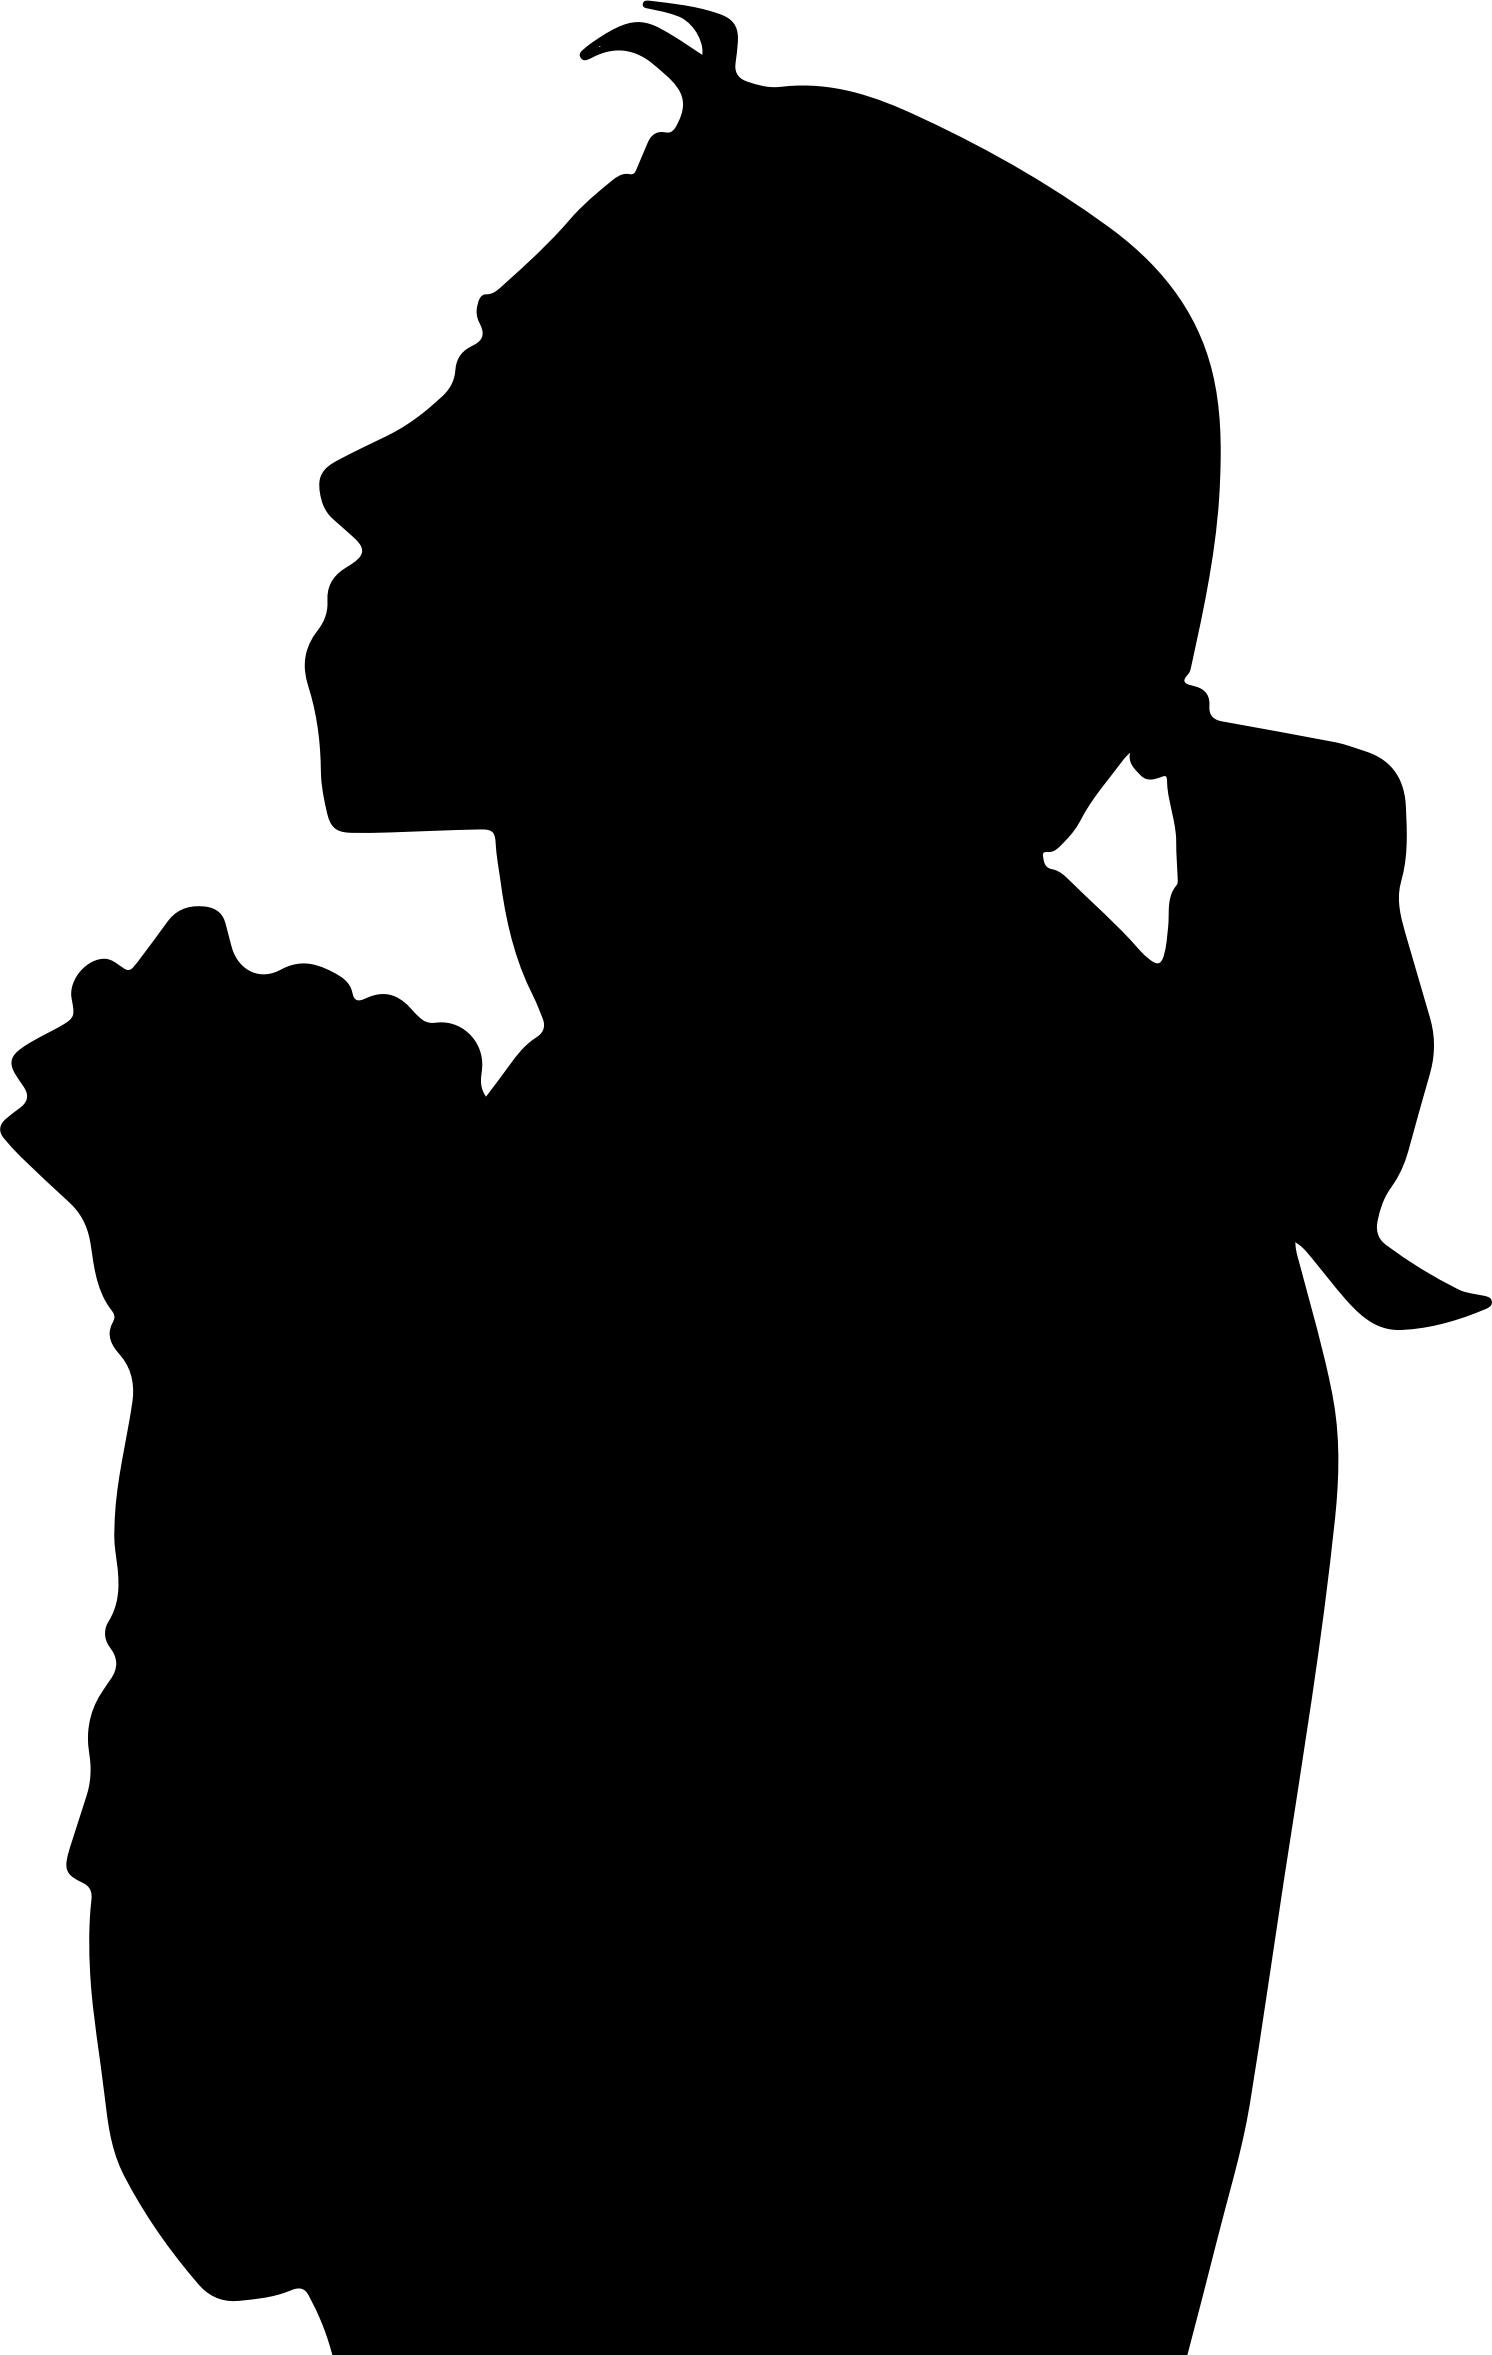 1492x2355 Woman Praying Silhouette 2 Icons Png